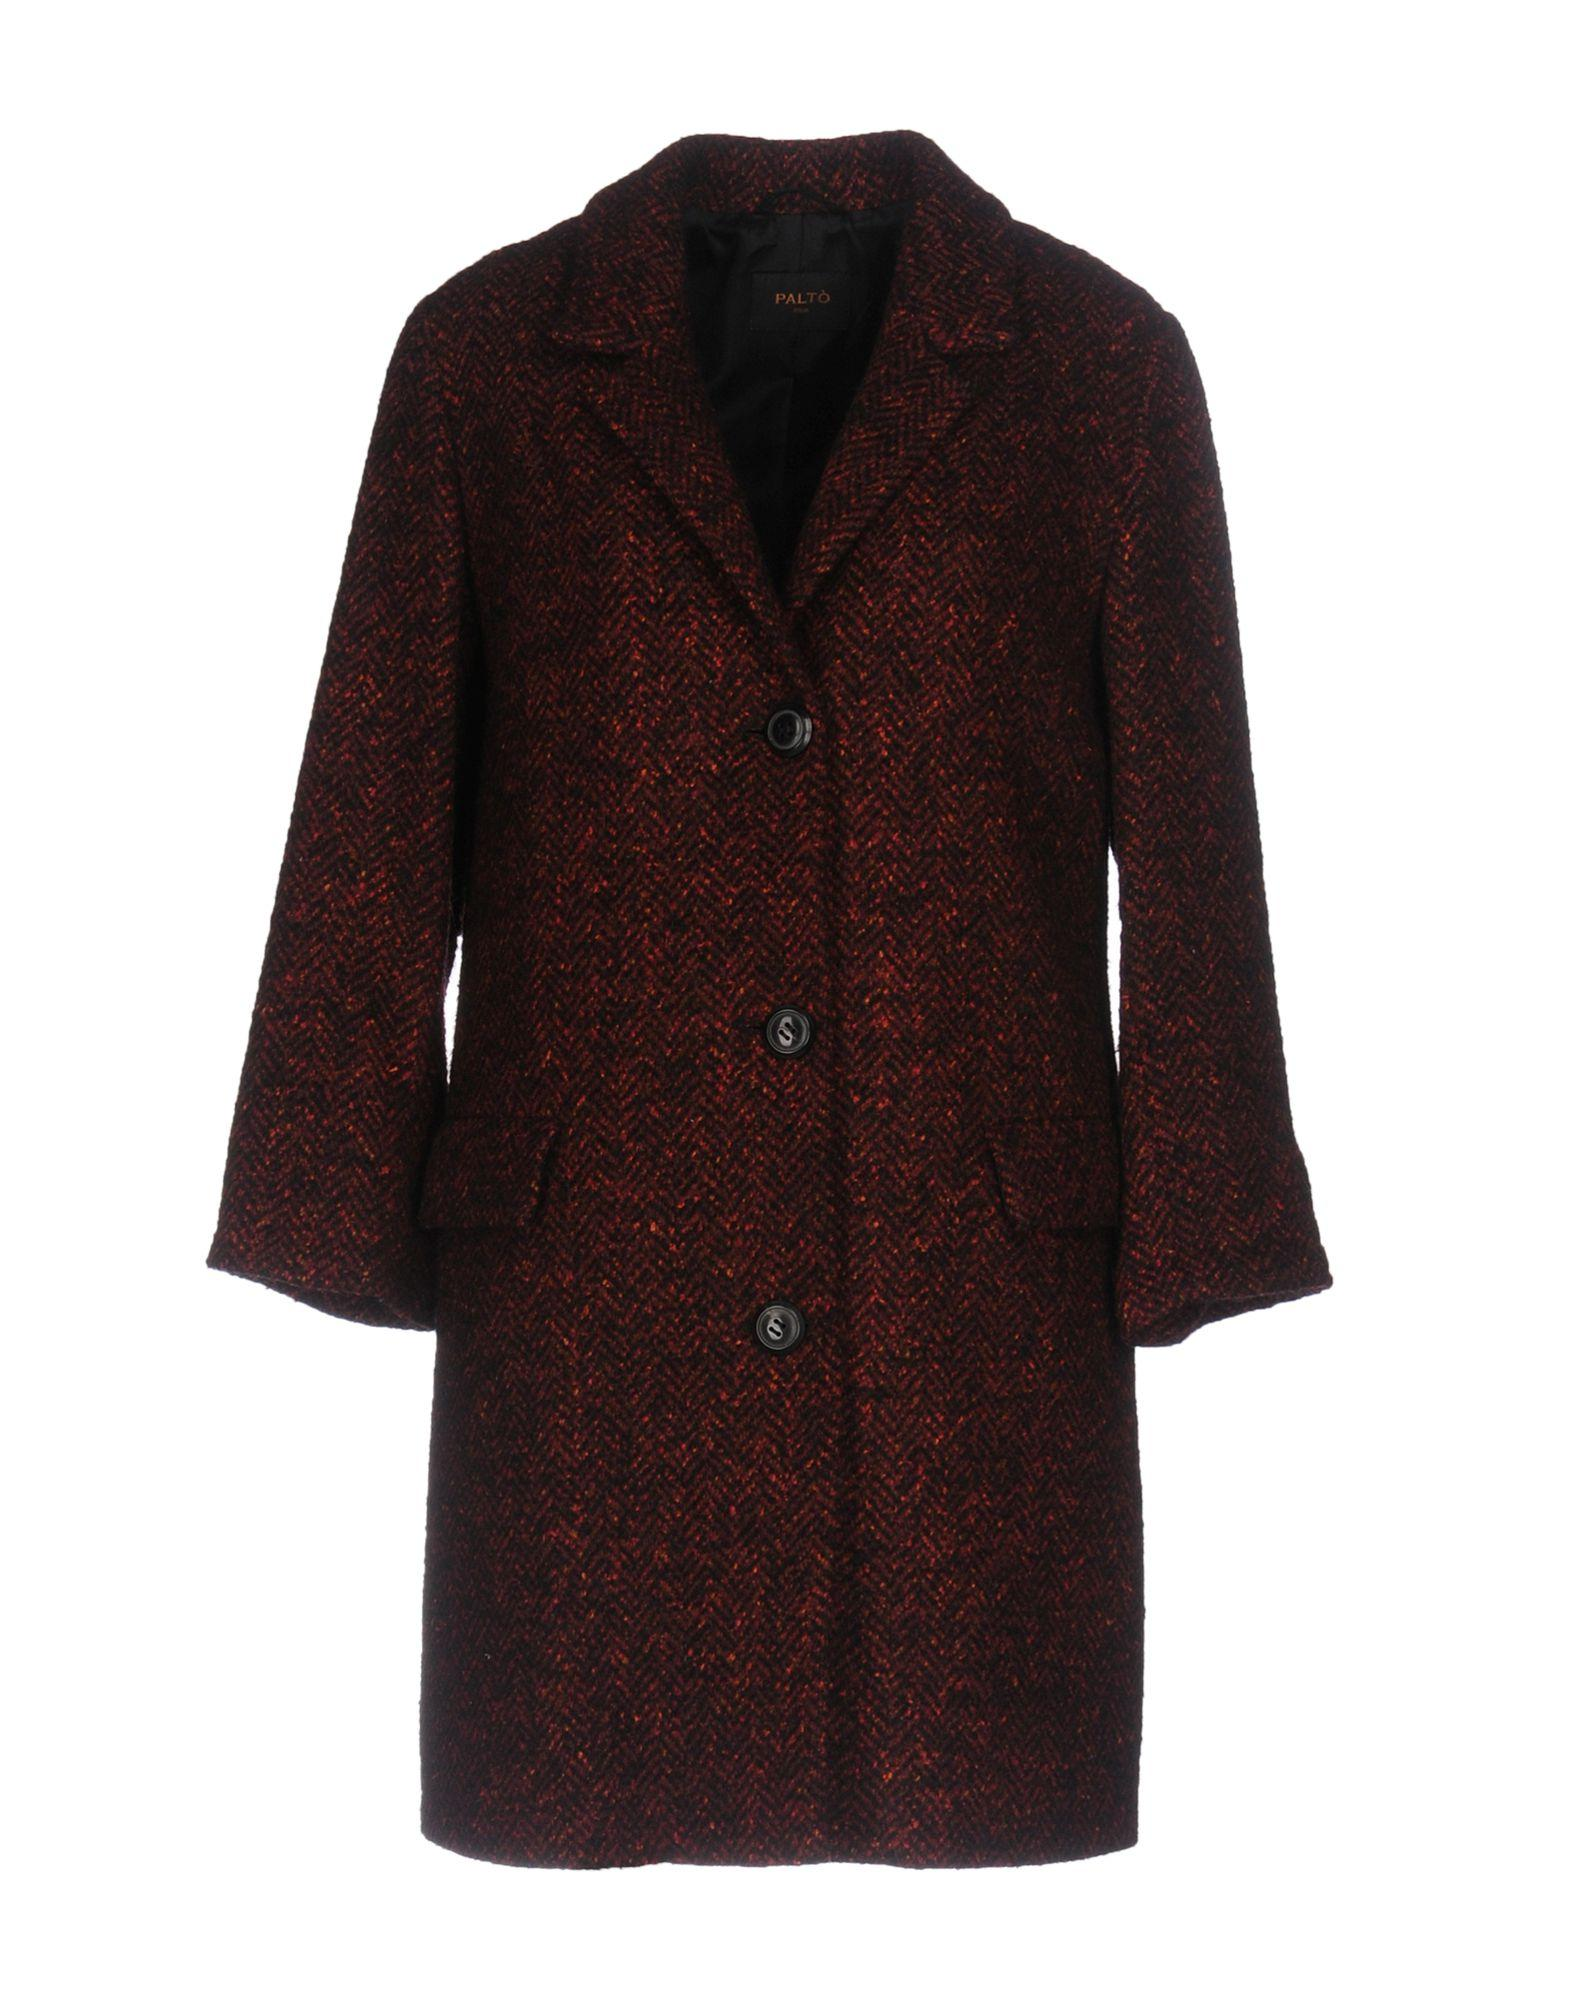 PaltÒ Coats In Maroon